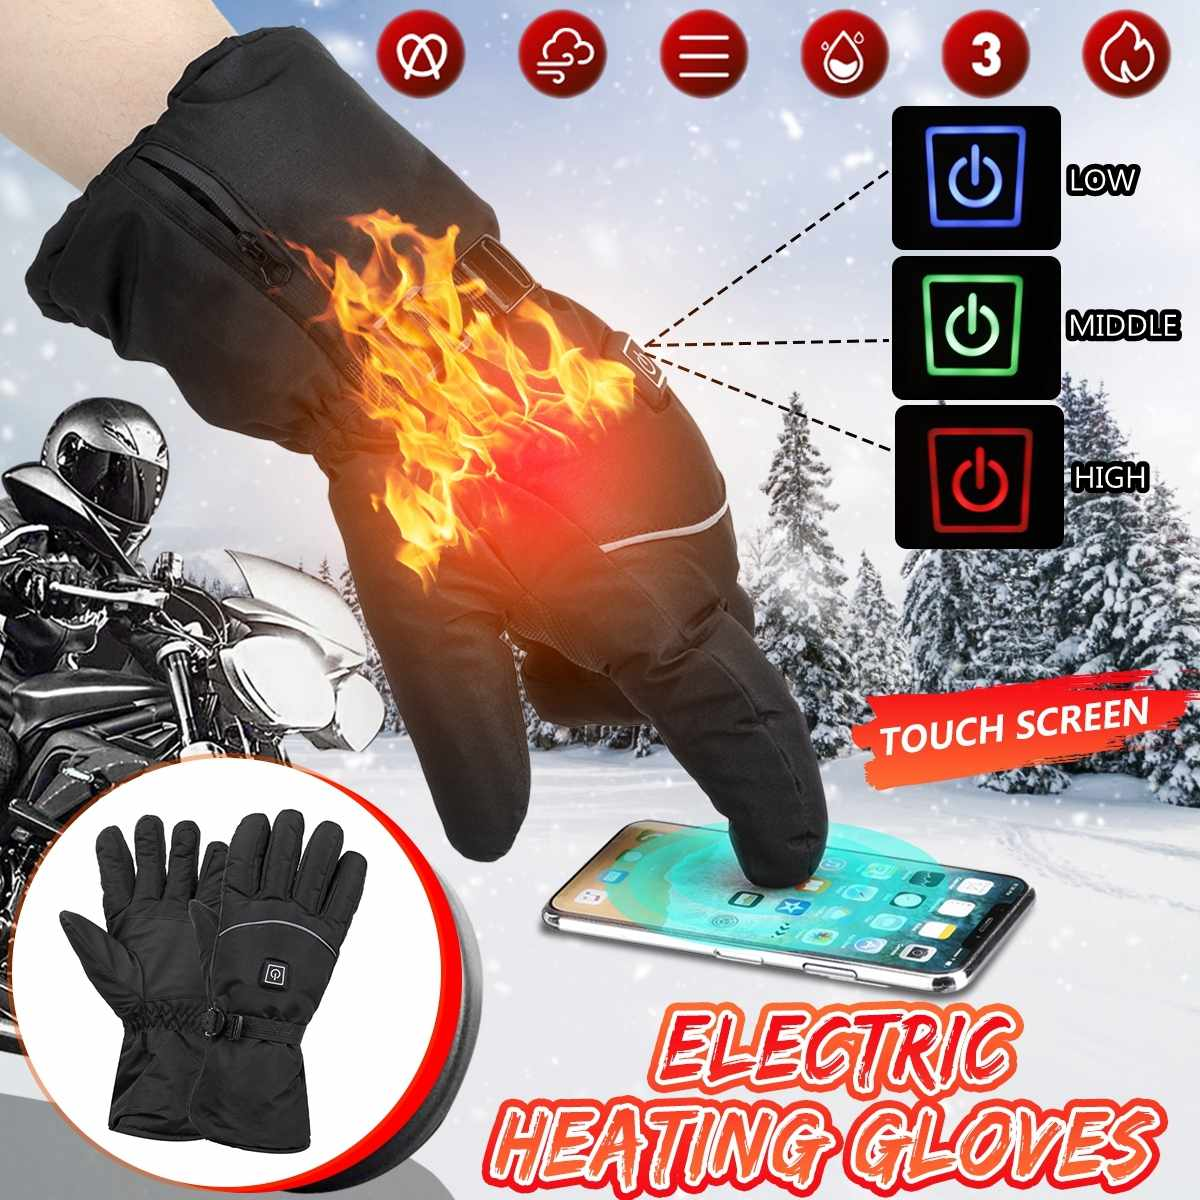 3 Level Winter USB Hand Warmer Electric Thermal Heated Gloves Waterproof Battery Powered For Motorcycle Racing Skiing Gloves